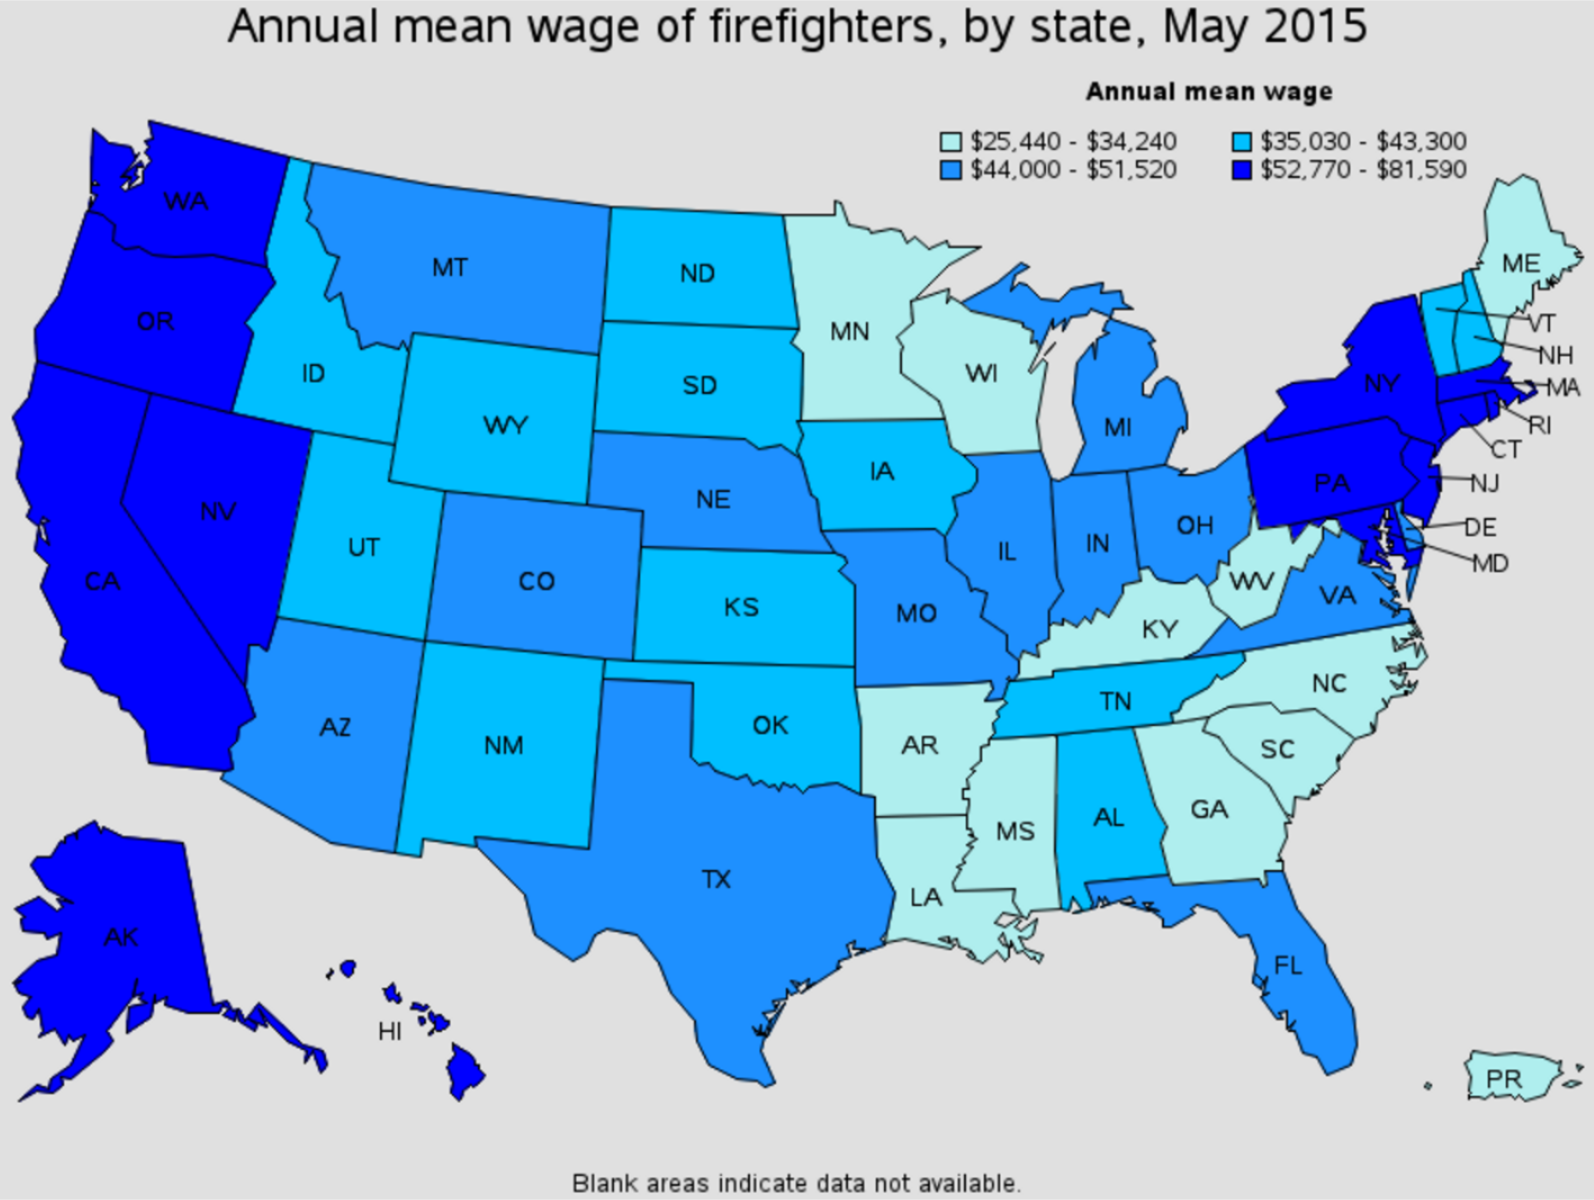 firefighter average salary by state Windsor Mill Maryland